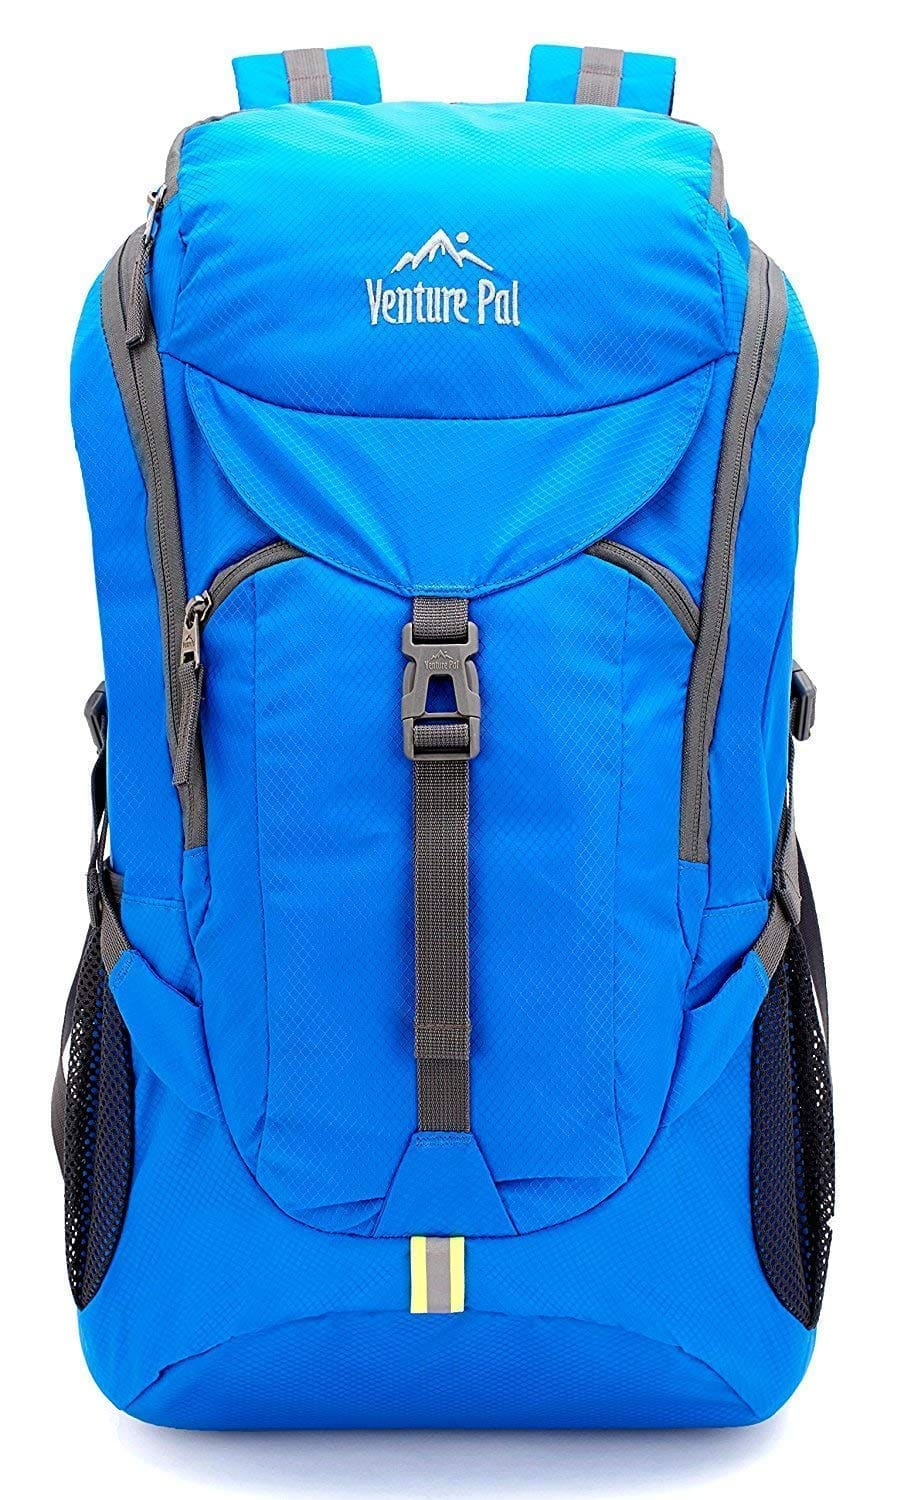 d6a9edbc05 Venture Pal Large Hiking Backpack - Packable Durable Lightweight Travel  Backpack Daypack -  11.50